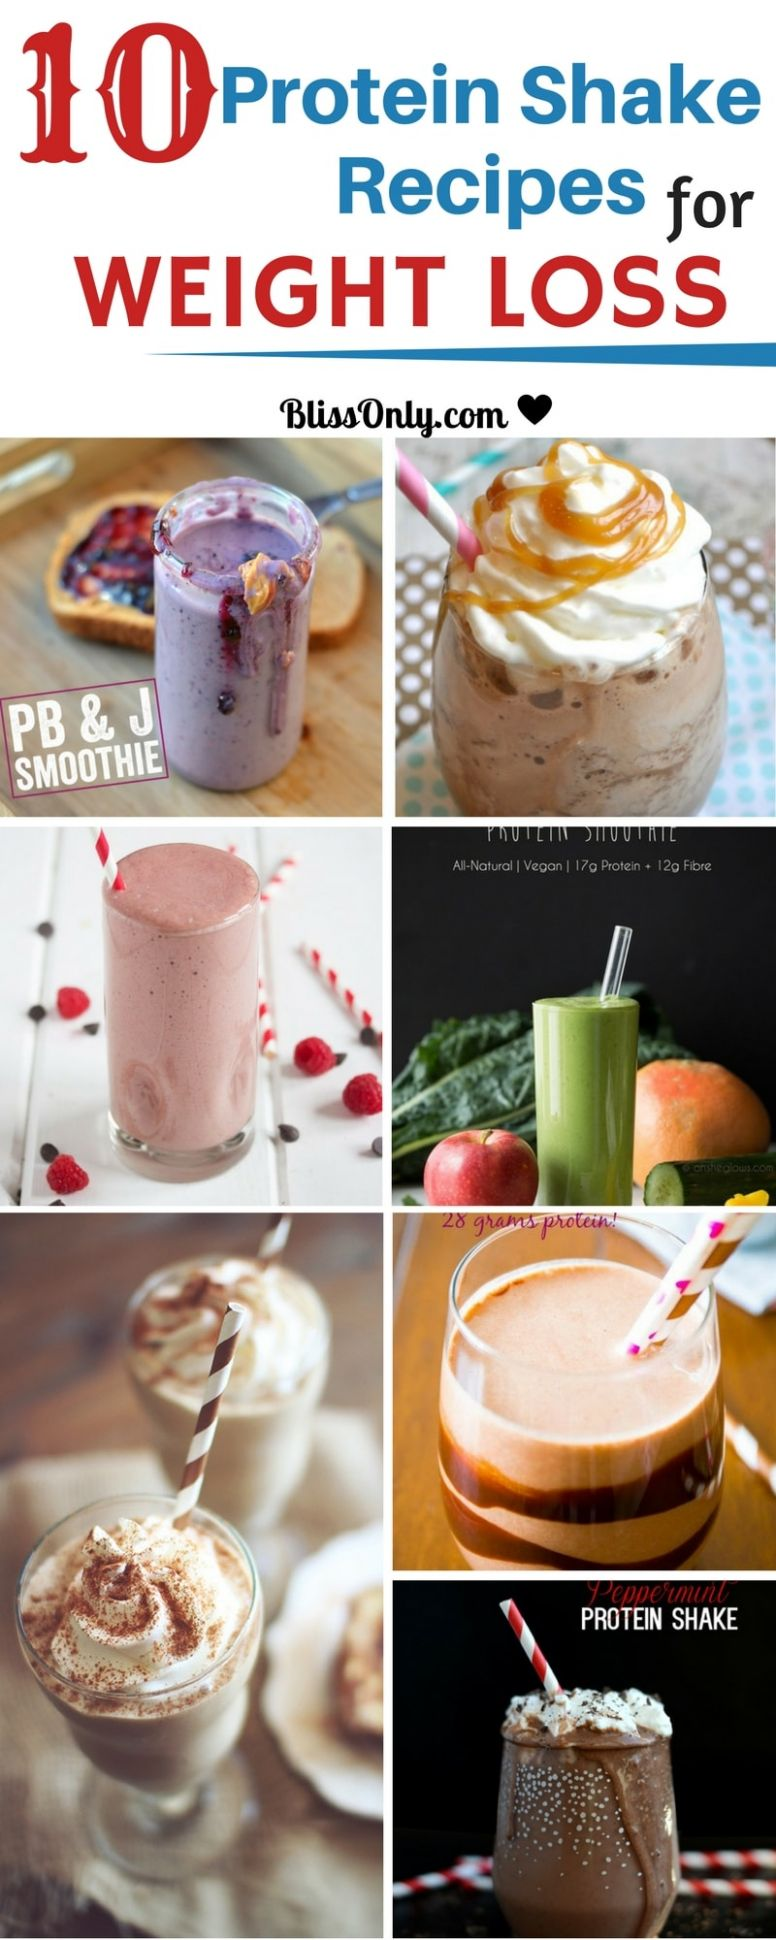 12 Protein Shake Recipes For Weight Loss - BlissOnly